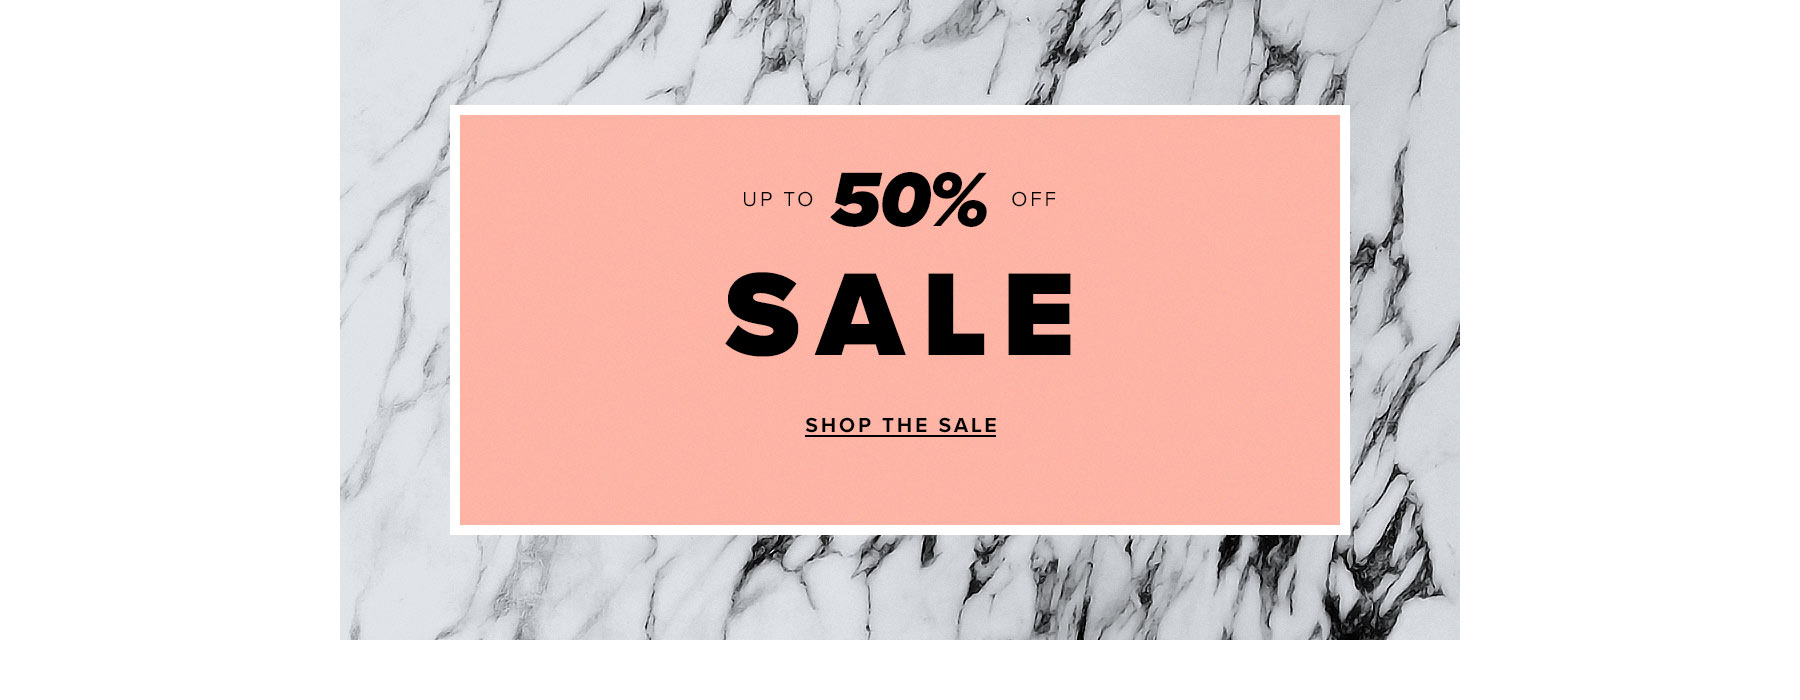 Sale. Up to 50% off! Shop Sale.